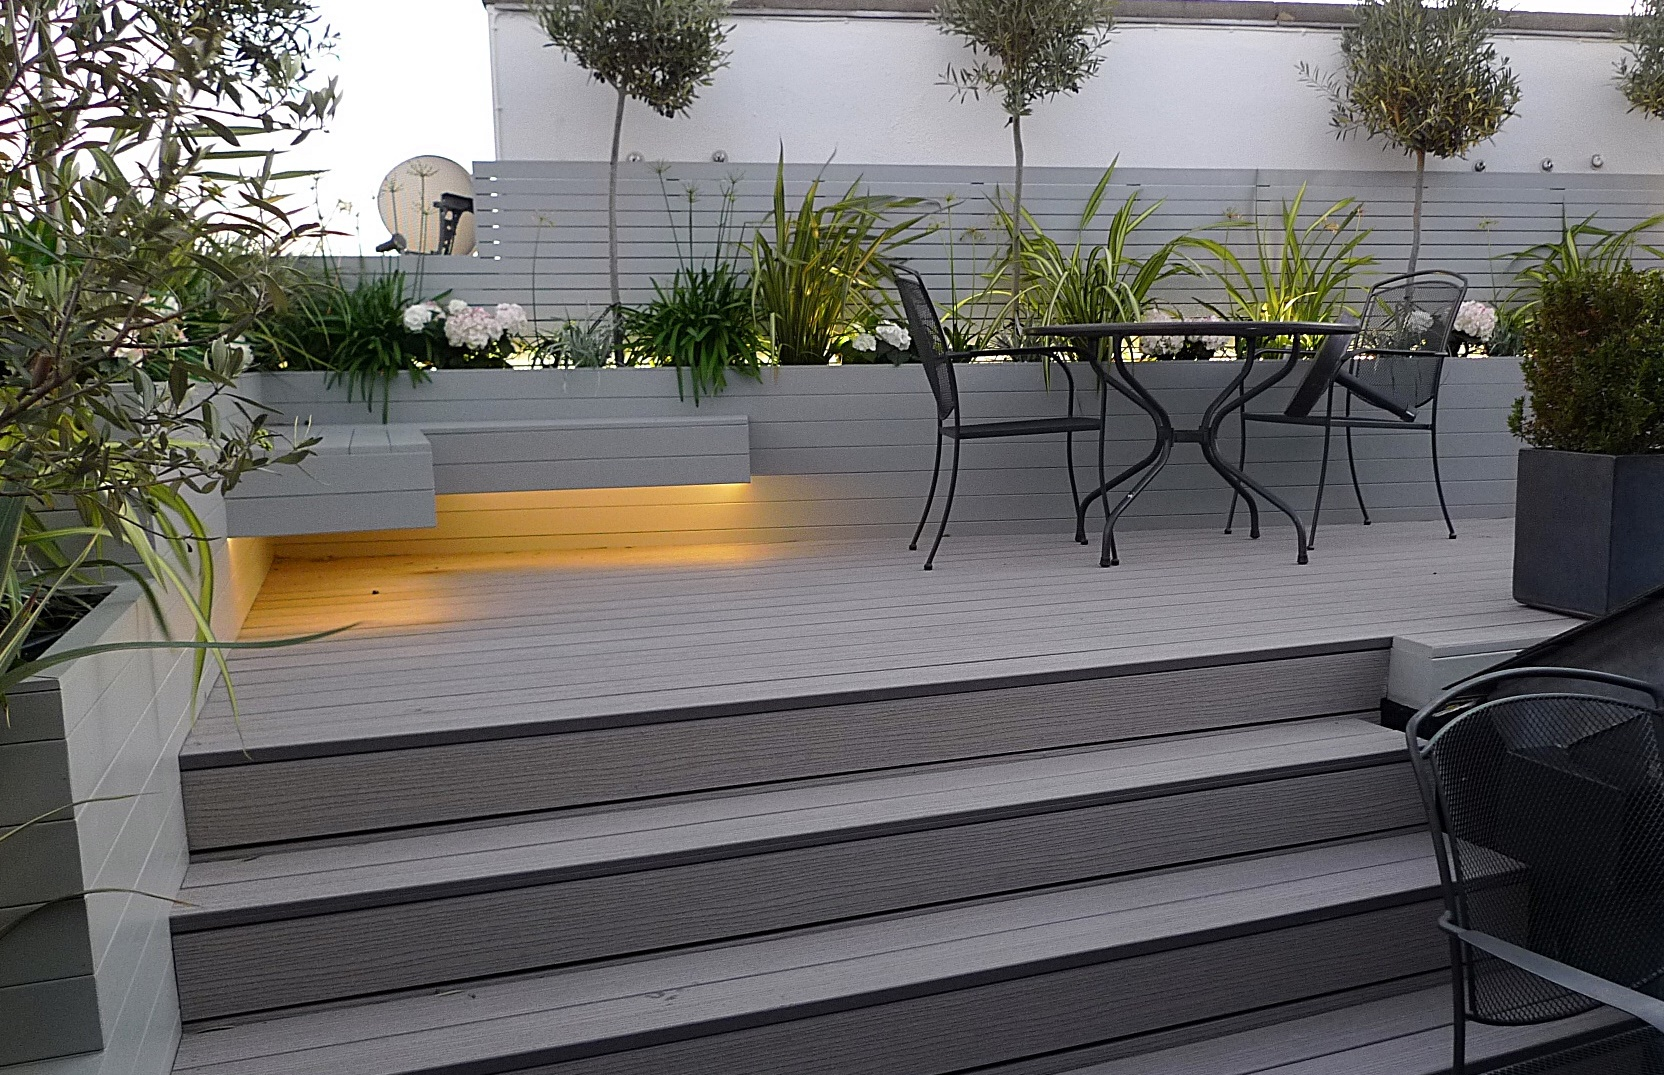 Lighting planting garden design company London